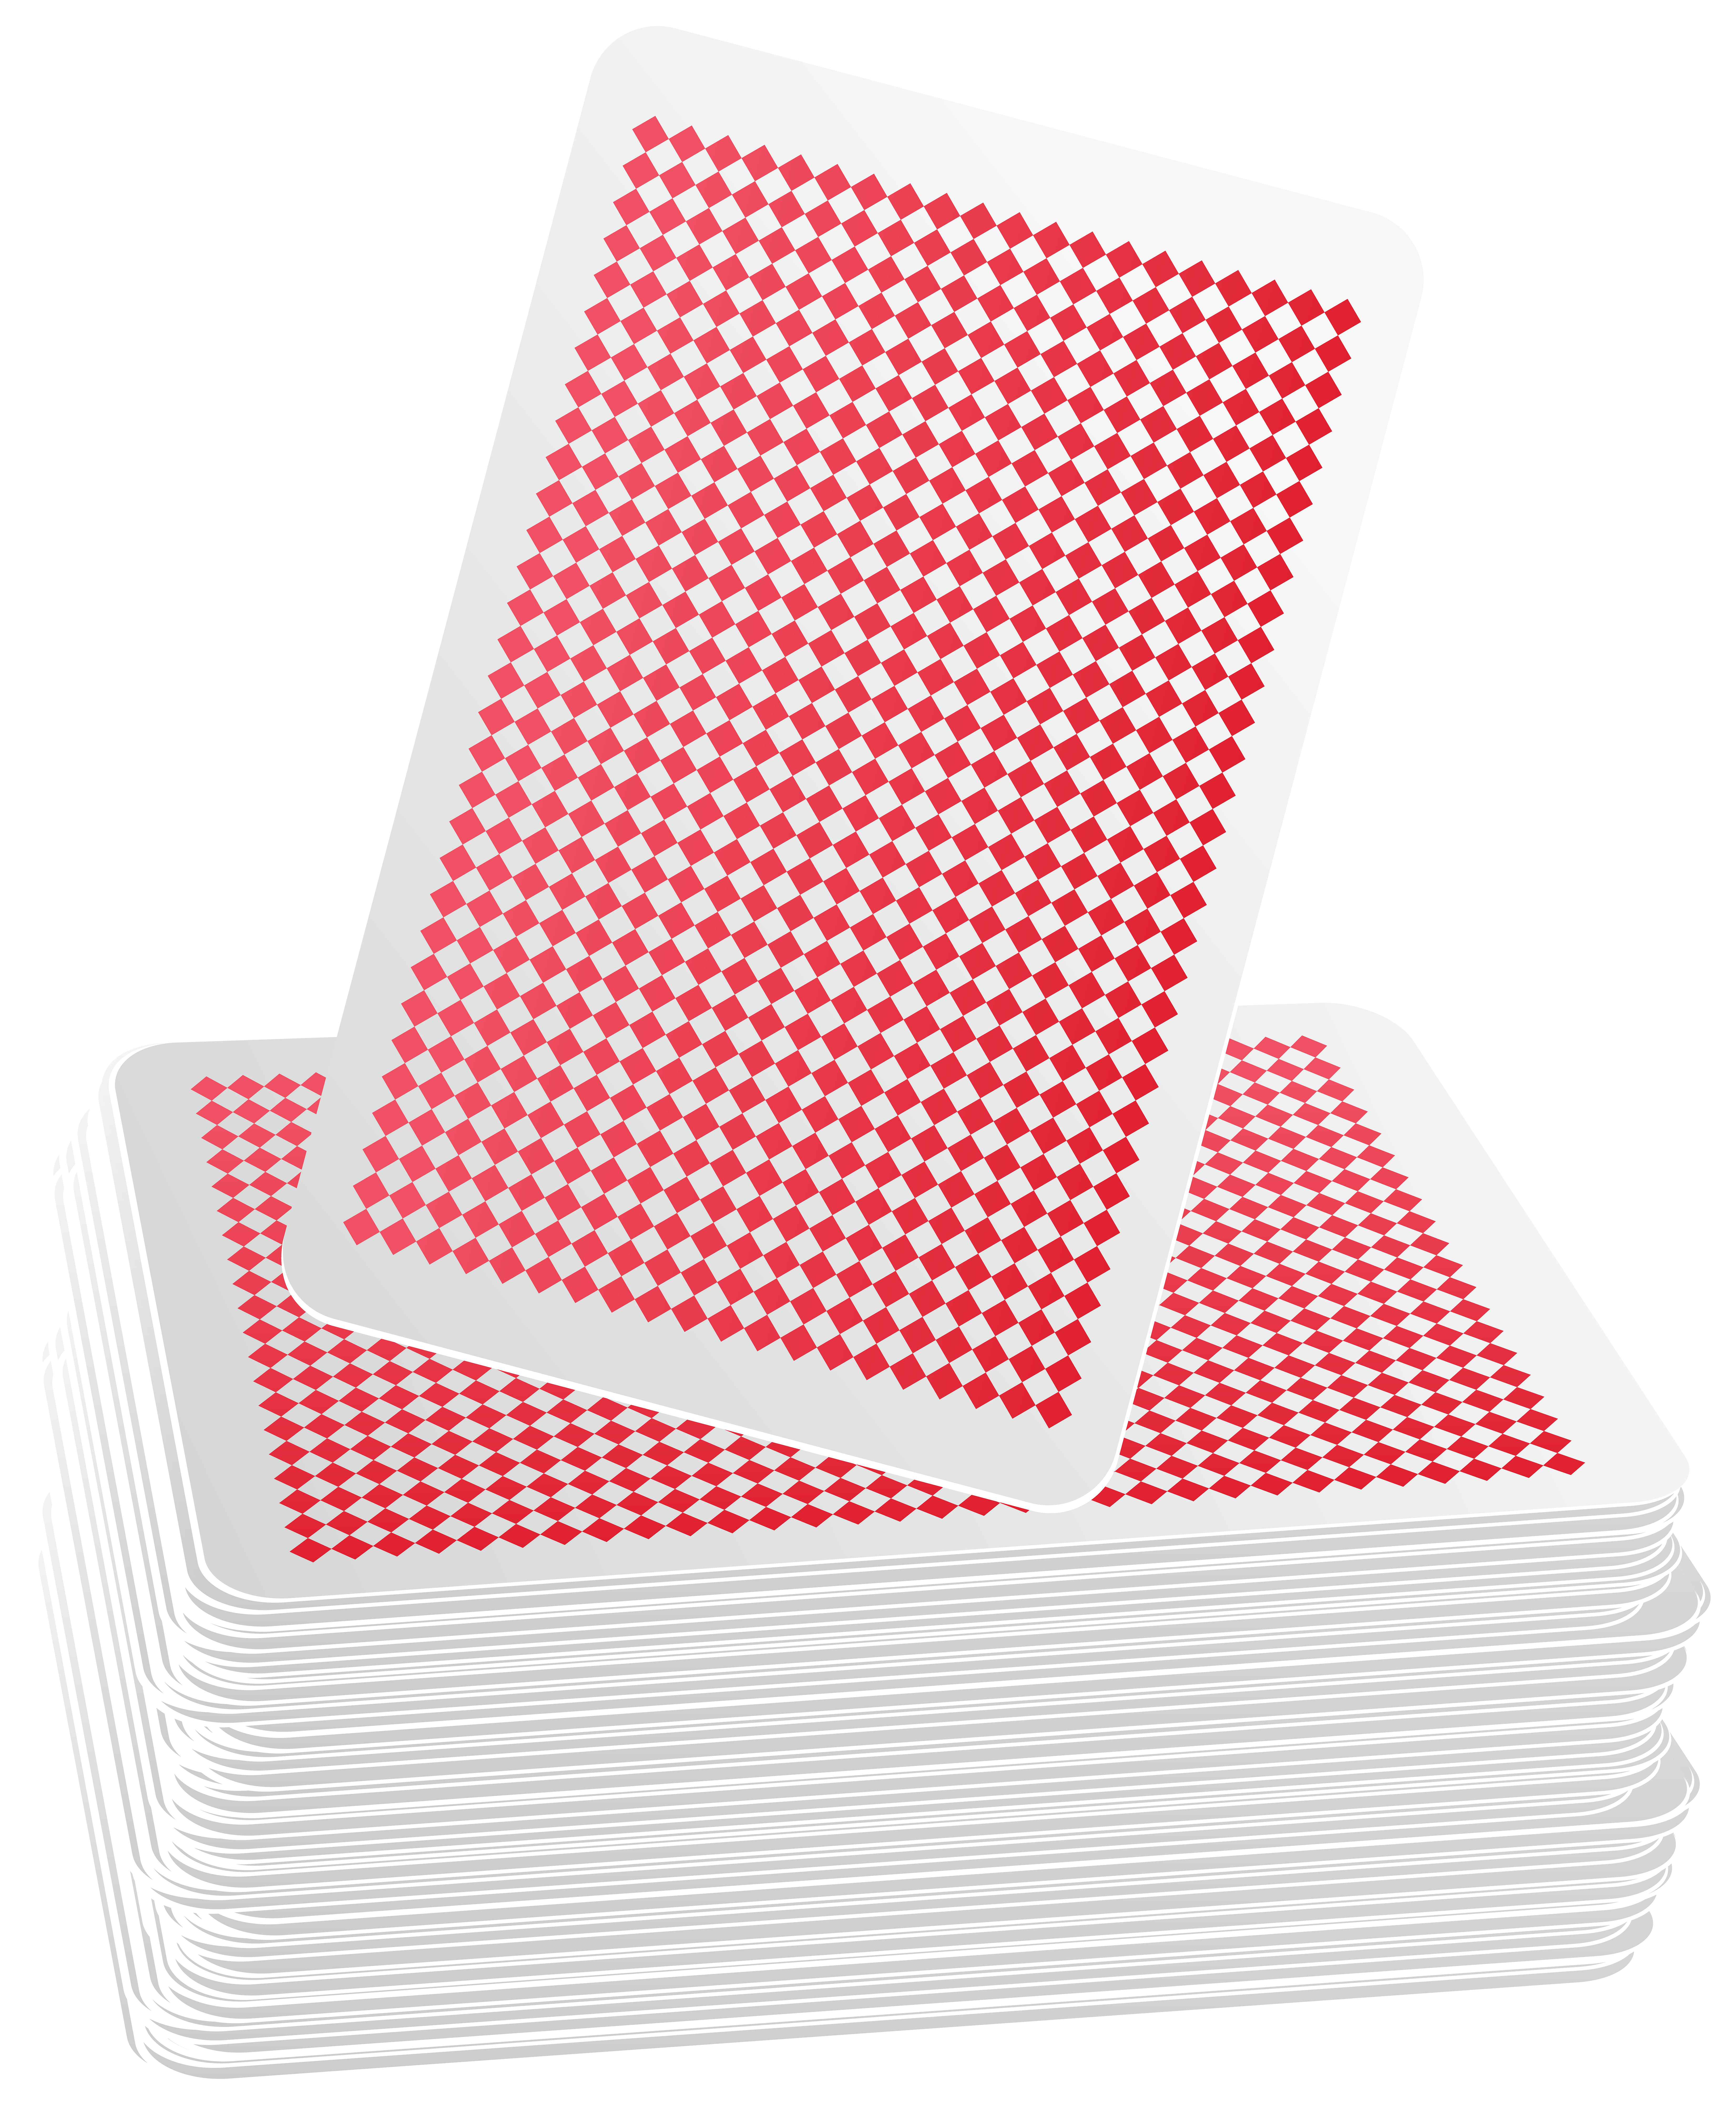 Cards clipart deck. Of png clip art